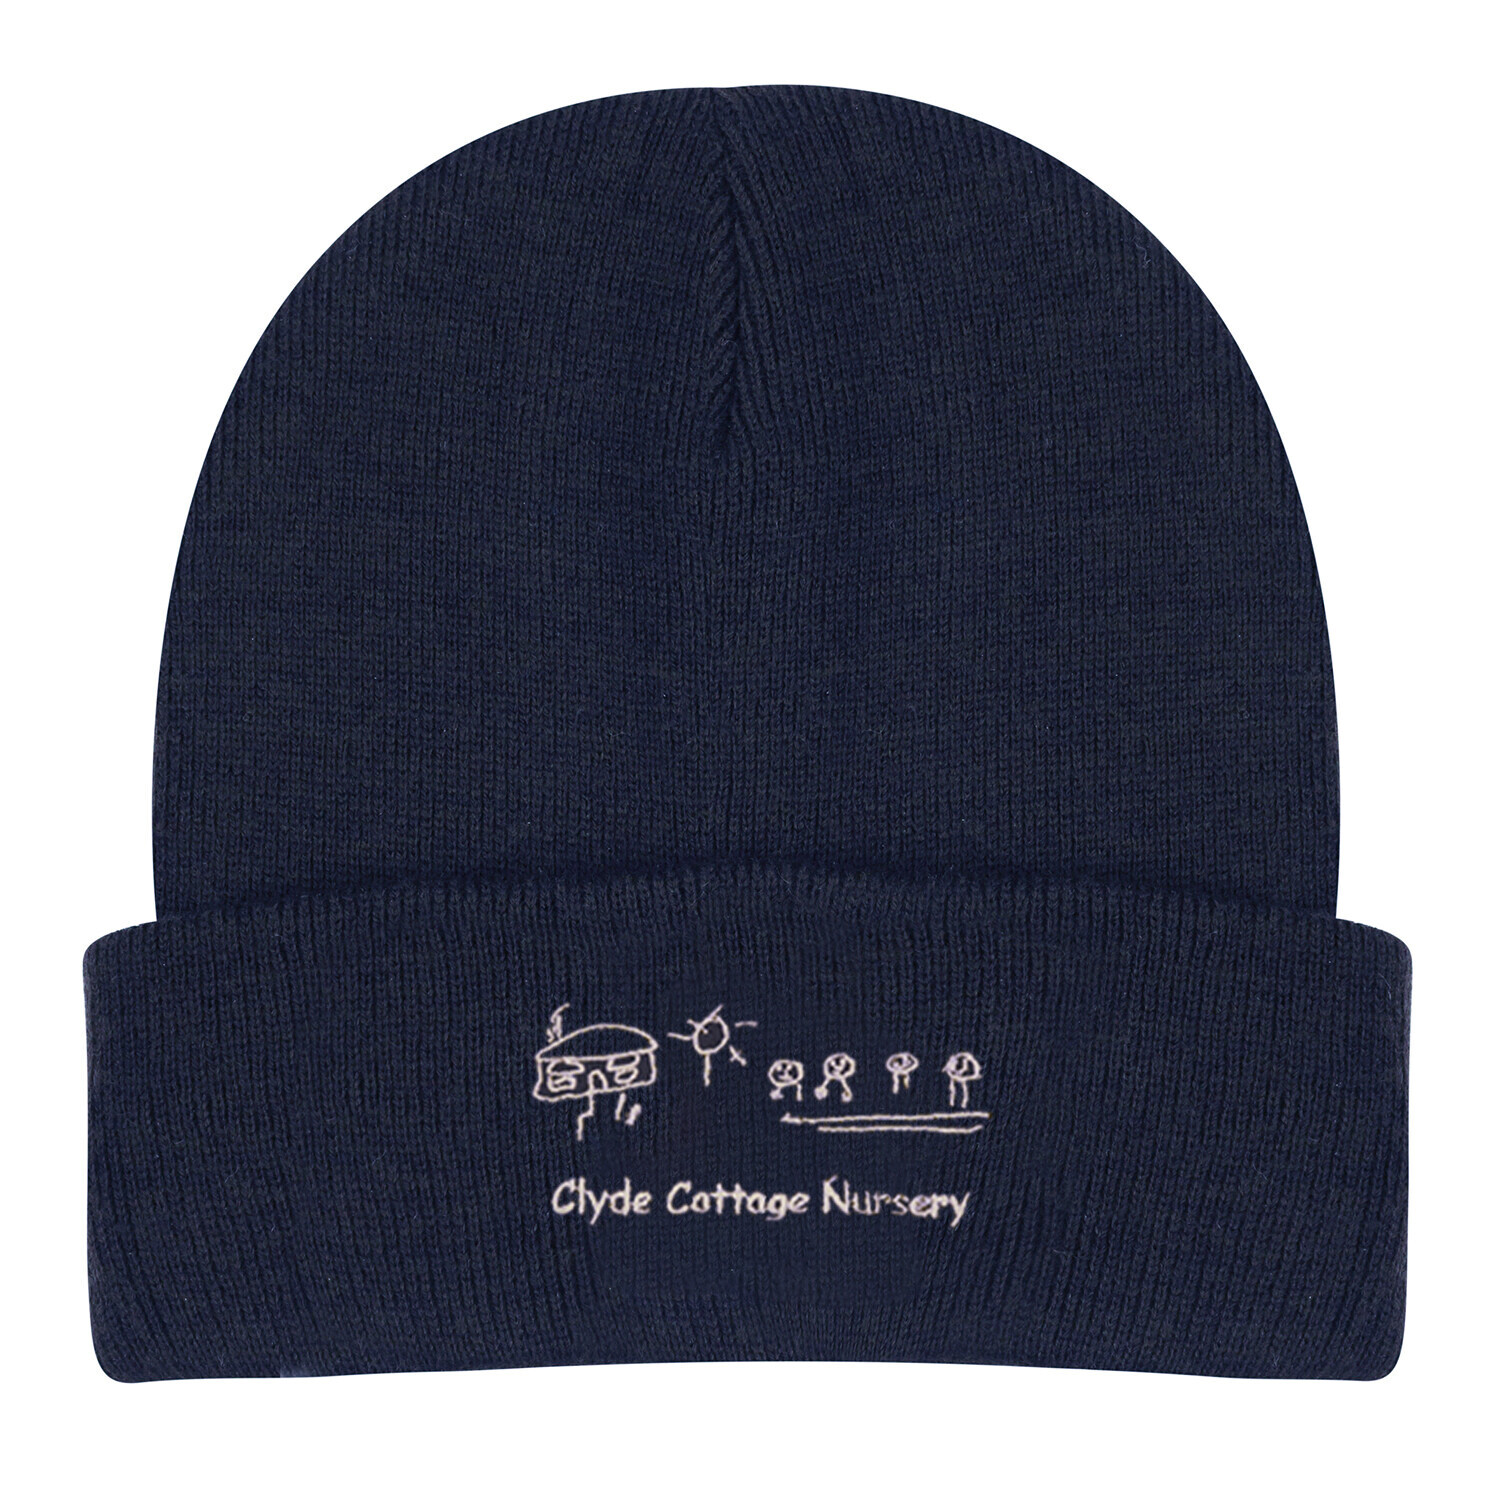 Clyde Cottage Nursery Staff Wooly Hat